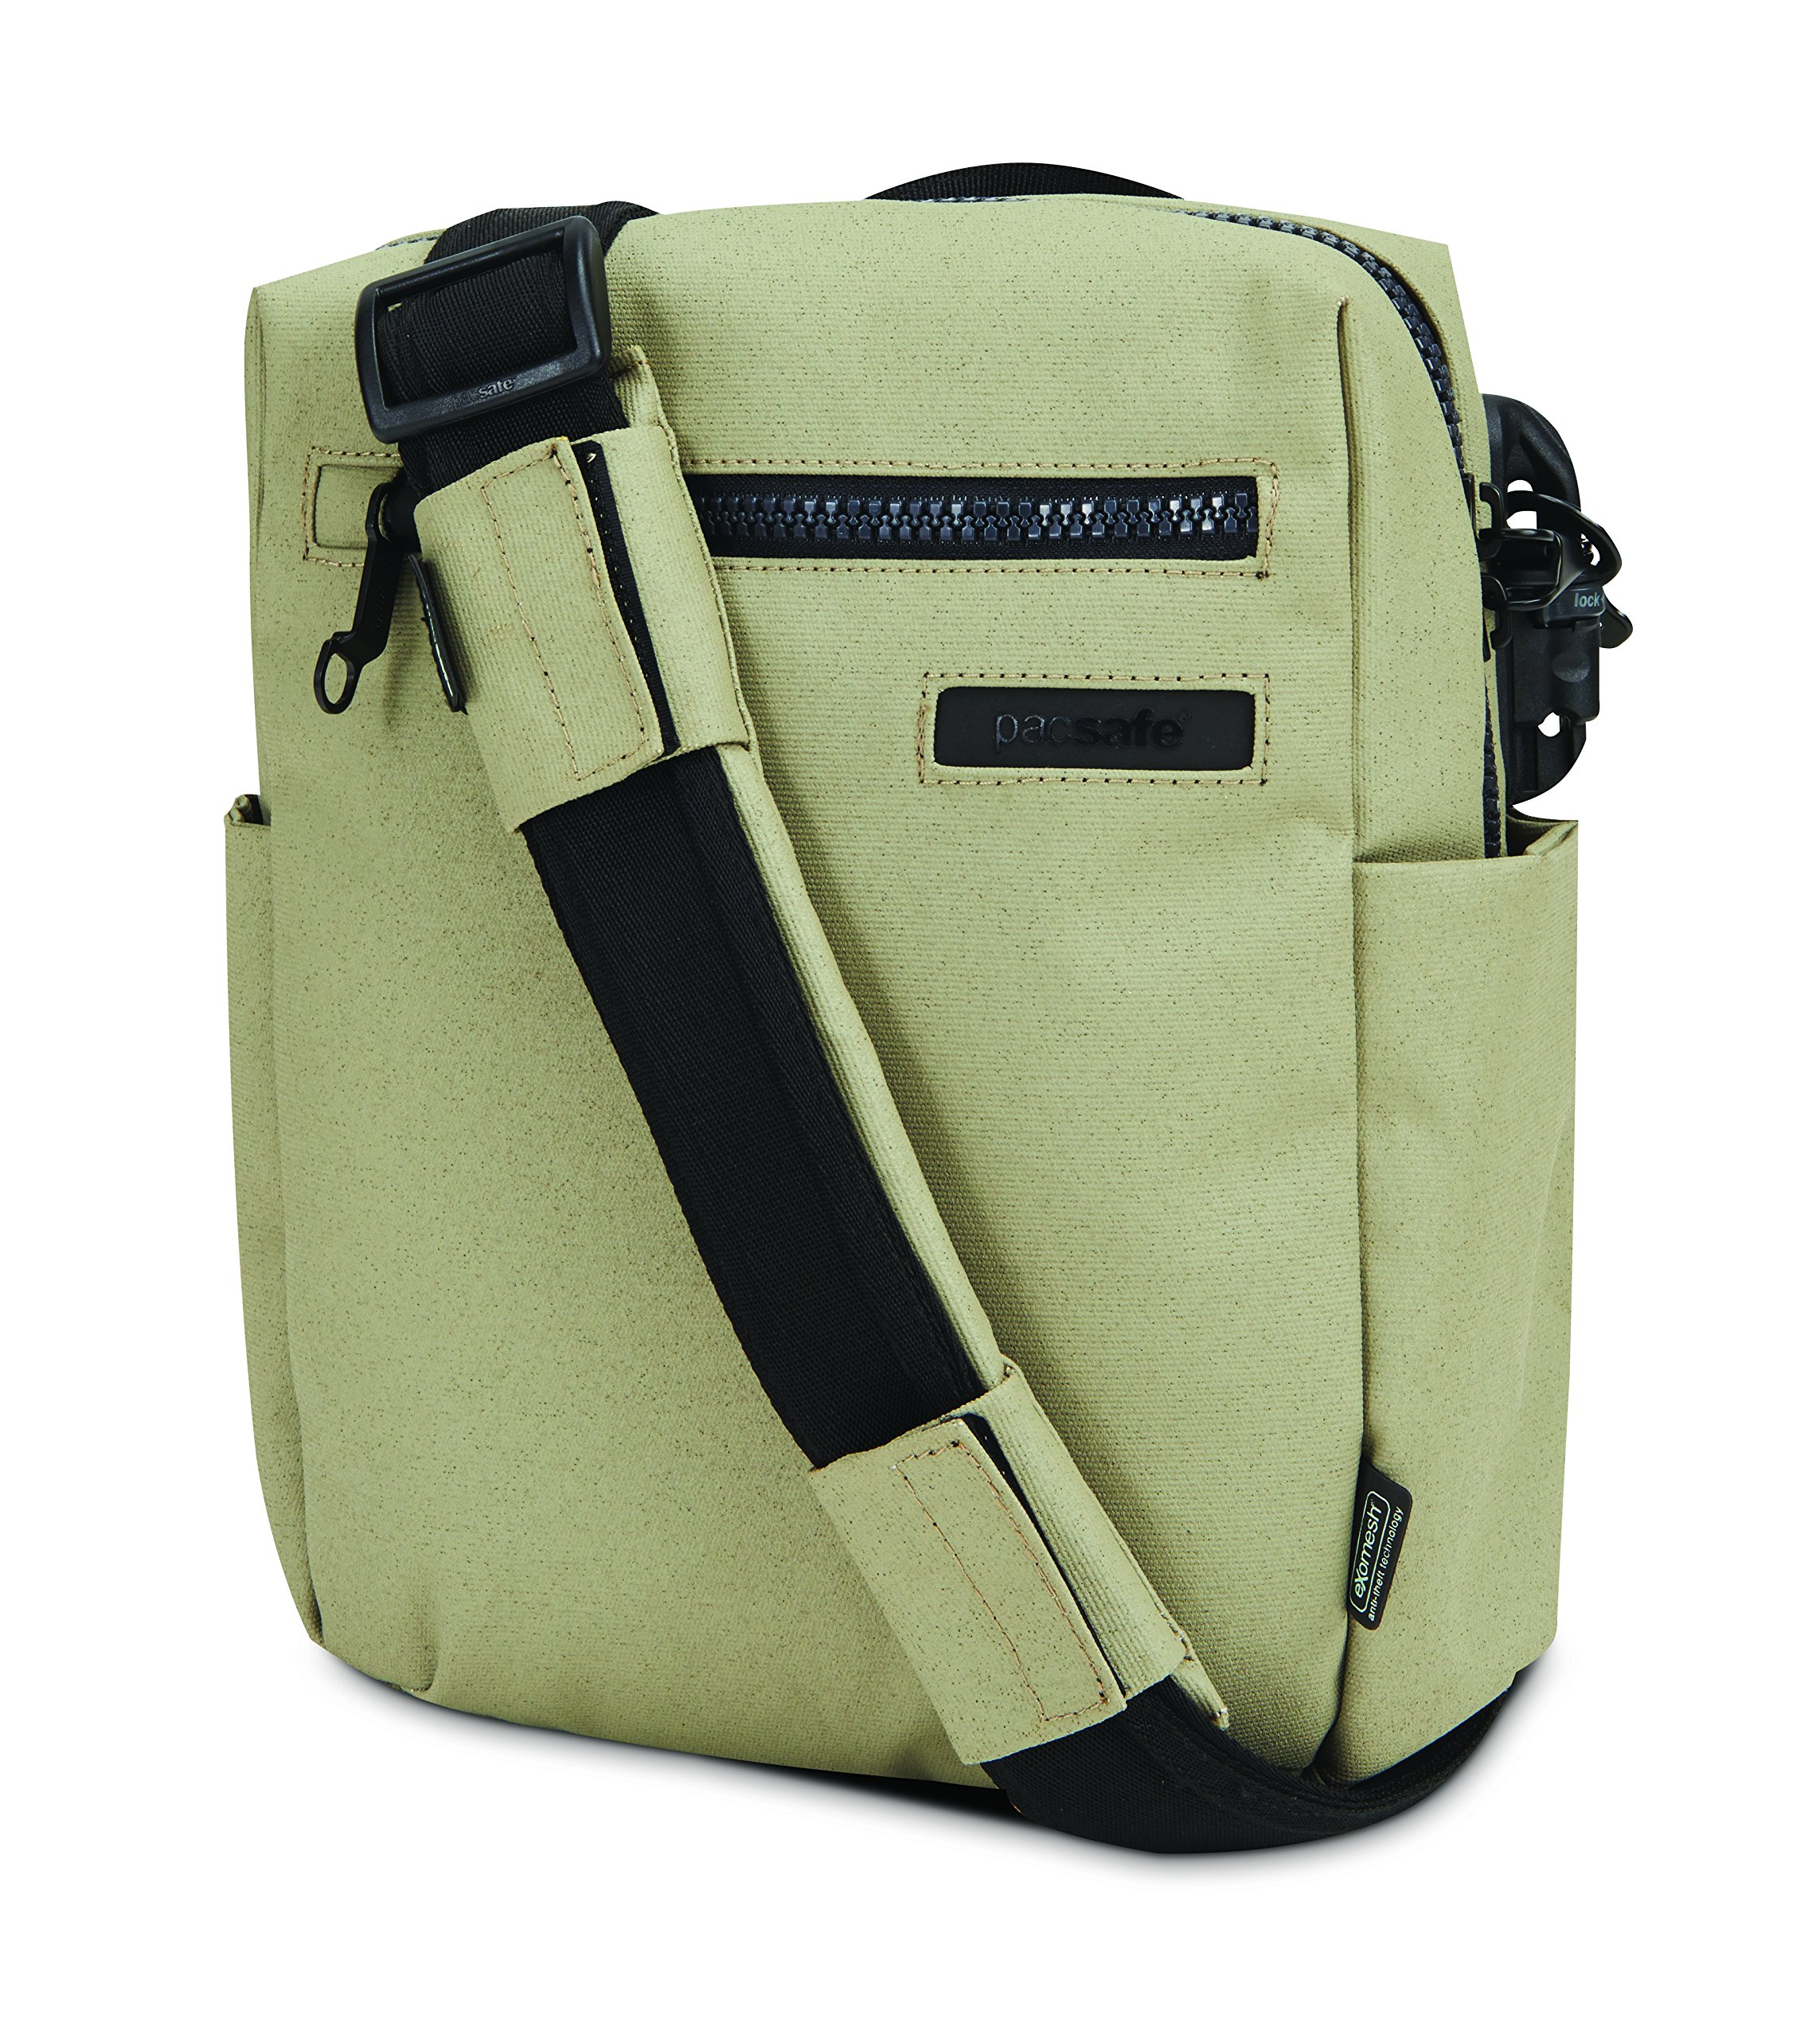 Pacsafe Intasafe Z200 Anti-Theft Compact Travel Bag, Slate Green by Pacsafe